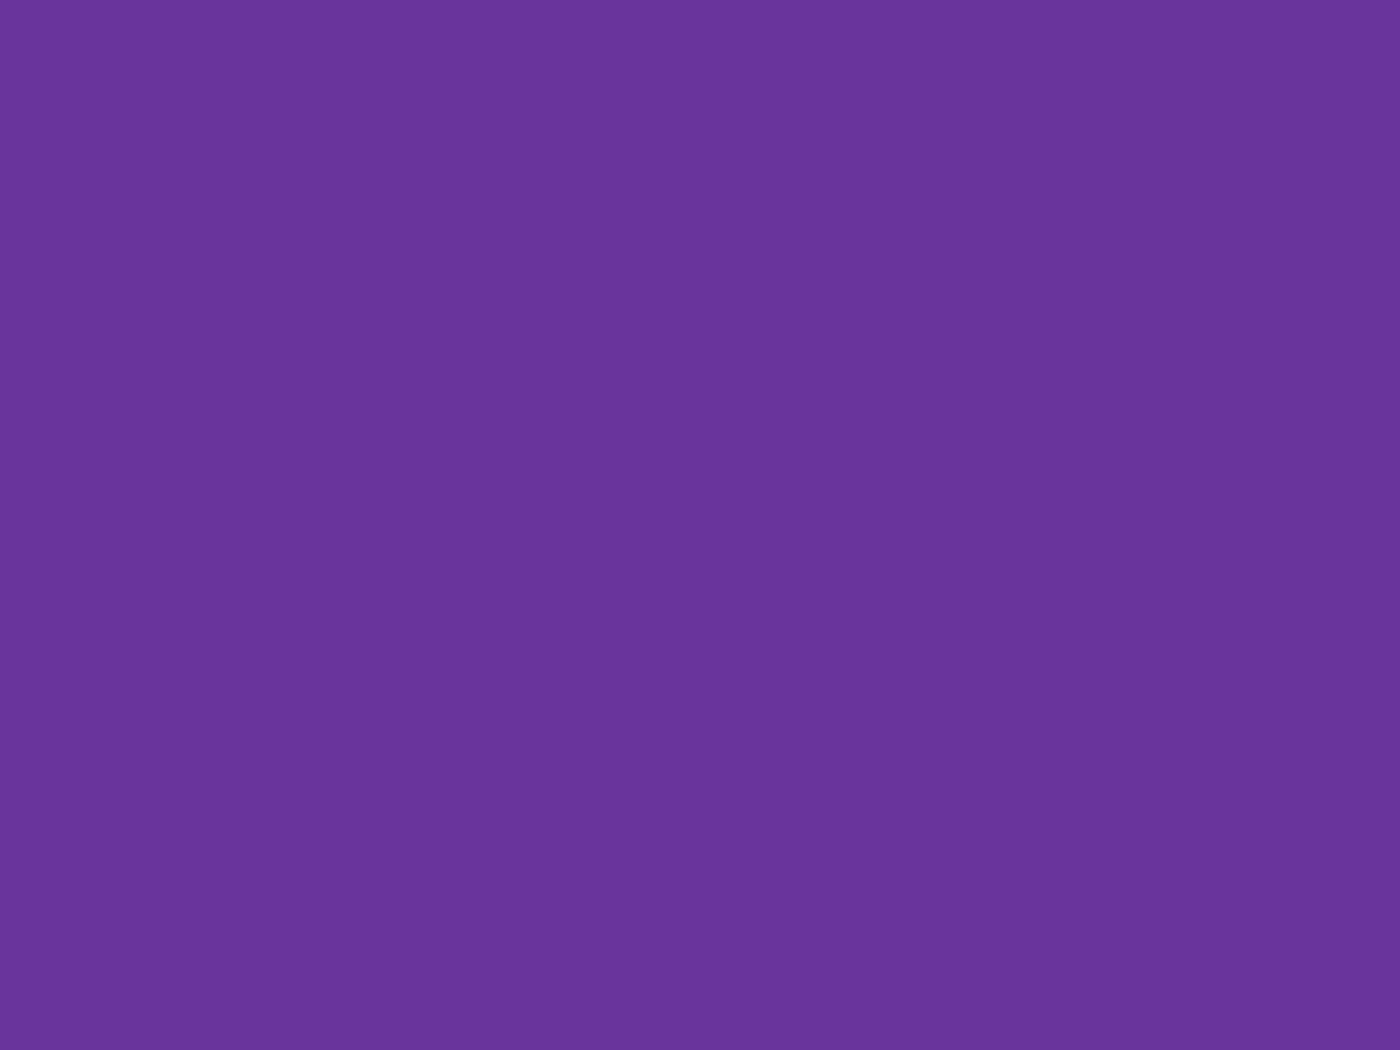 1400x1050 Purple Heart Solid Color Background